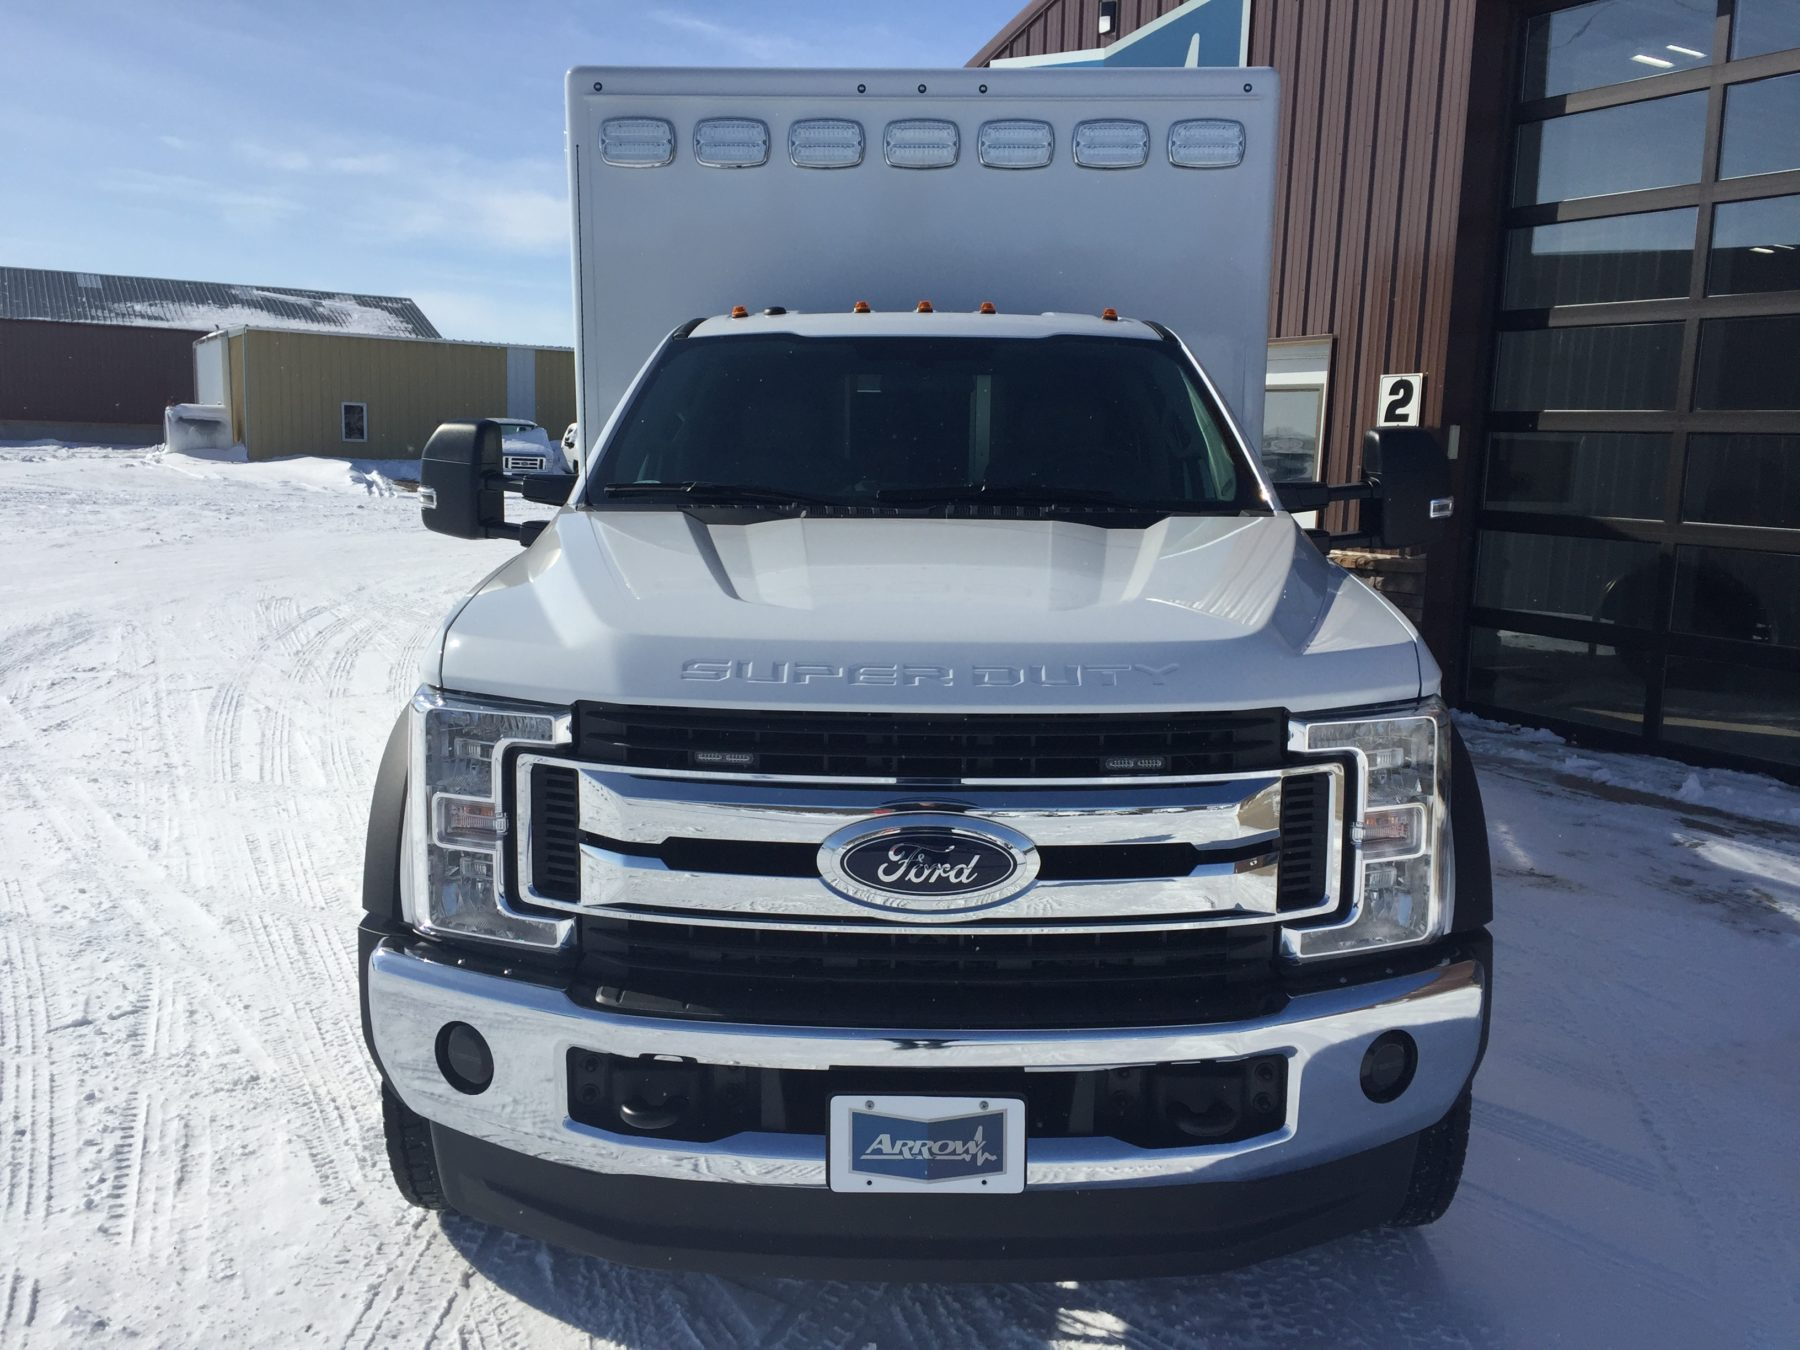 2019 Ford F450 4x4 Heavy Duty Ambulance For Sale – Picture 7